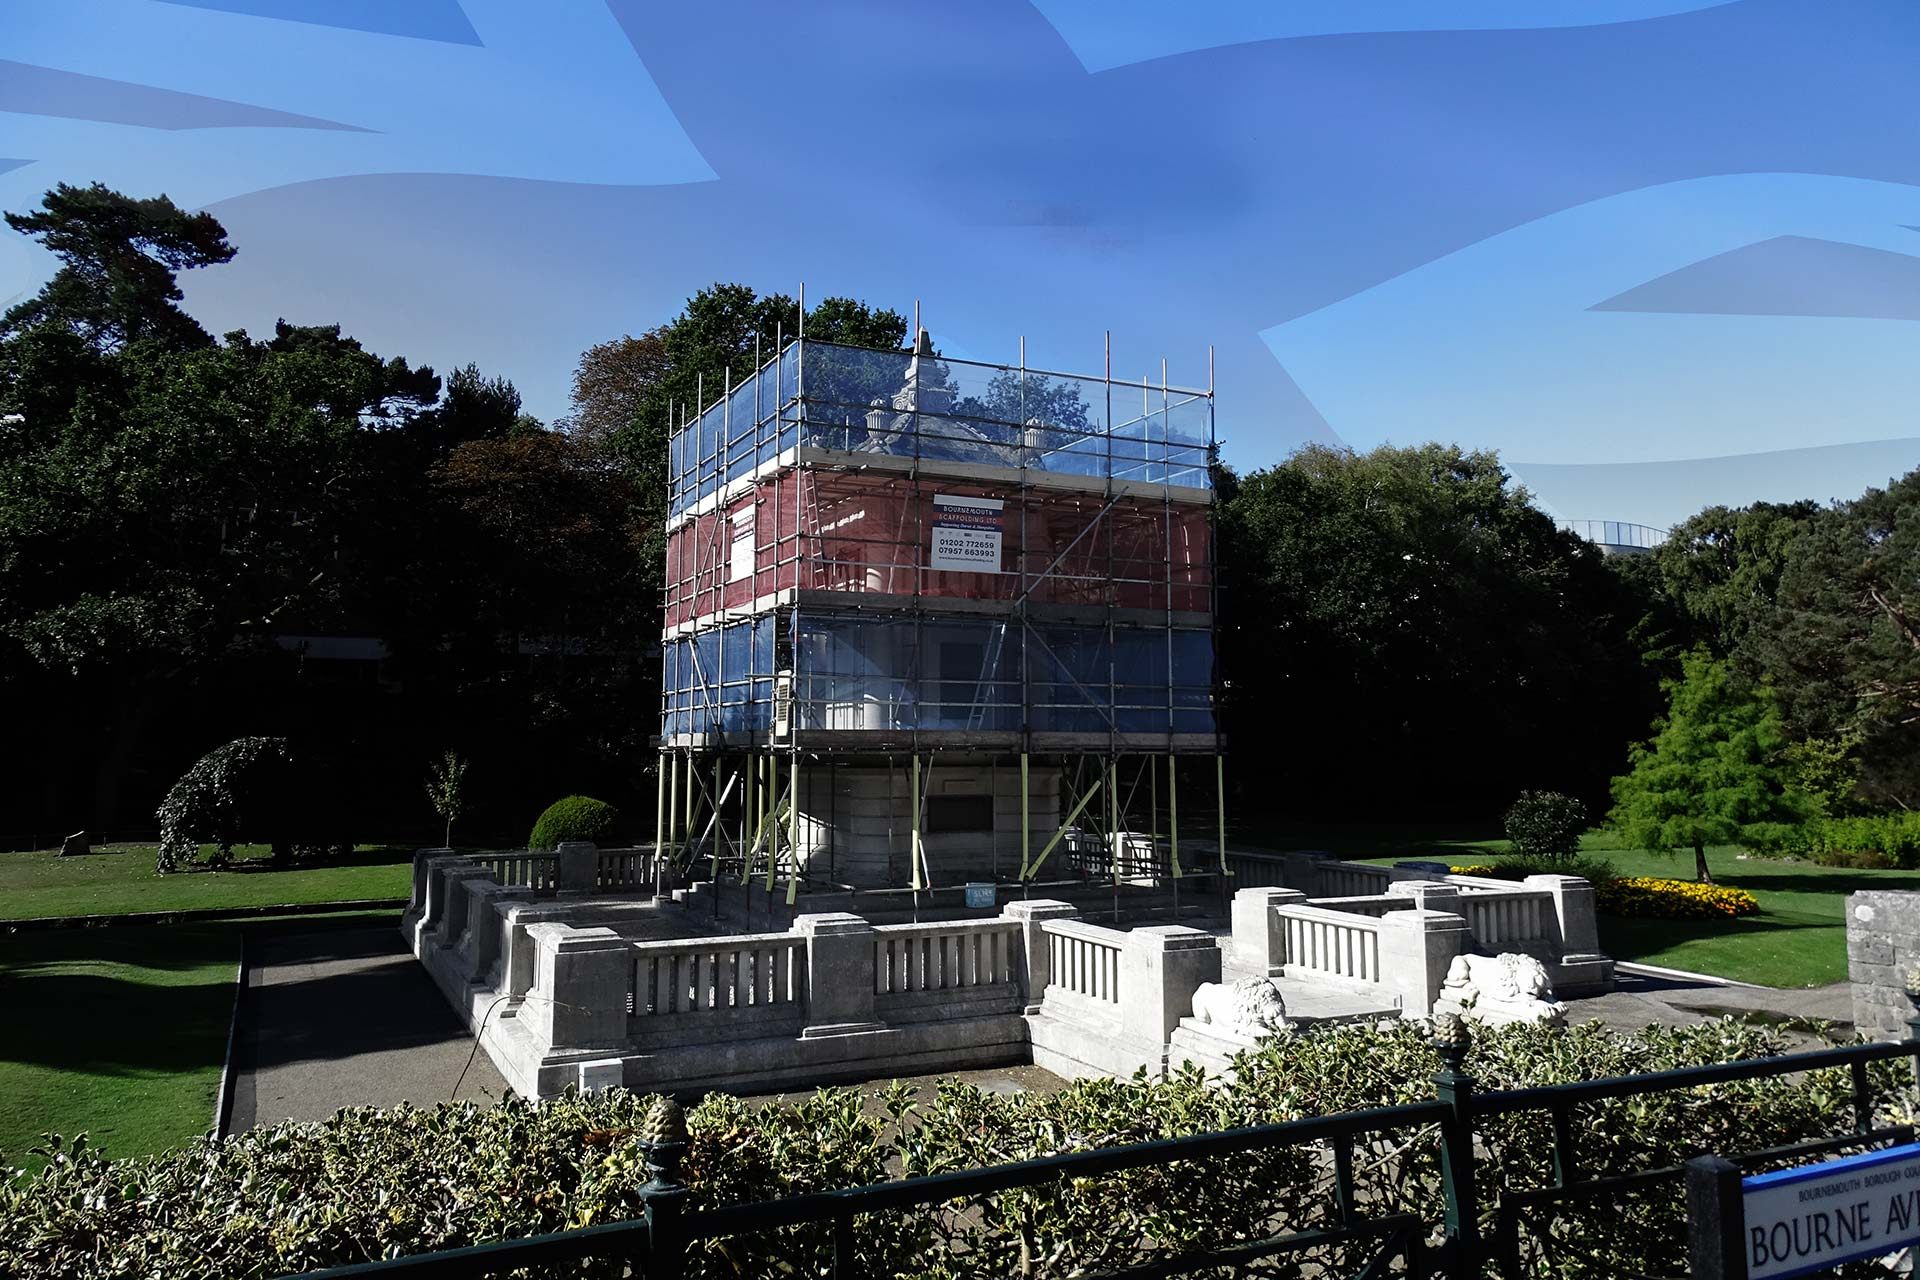 Slide - Bournemouth Gardens Cenotaph Scaffolding